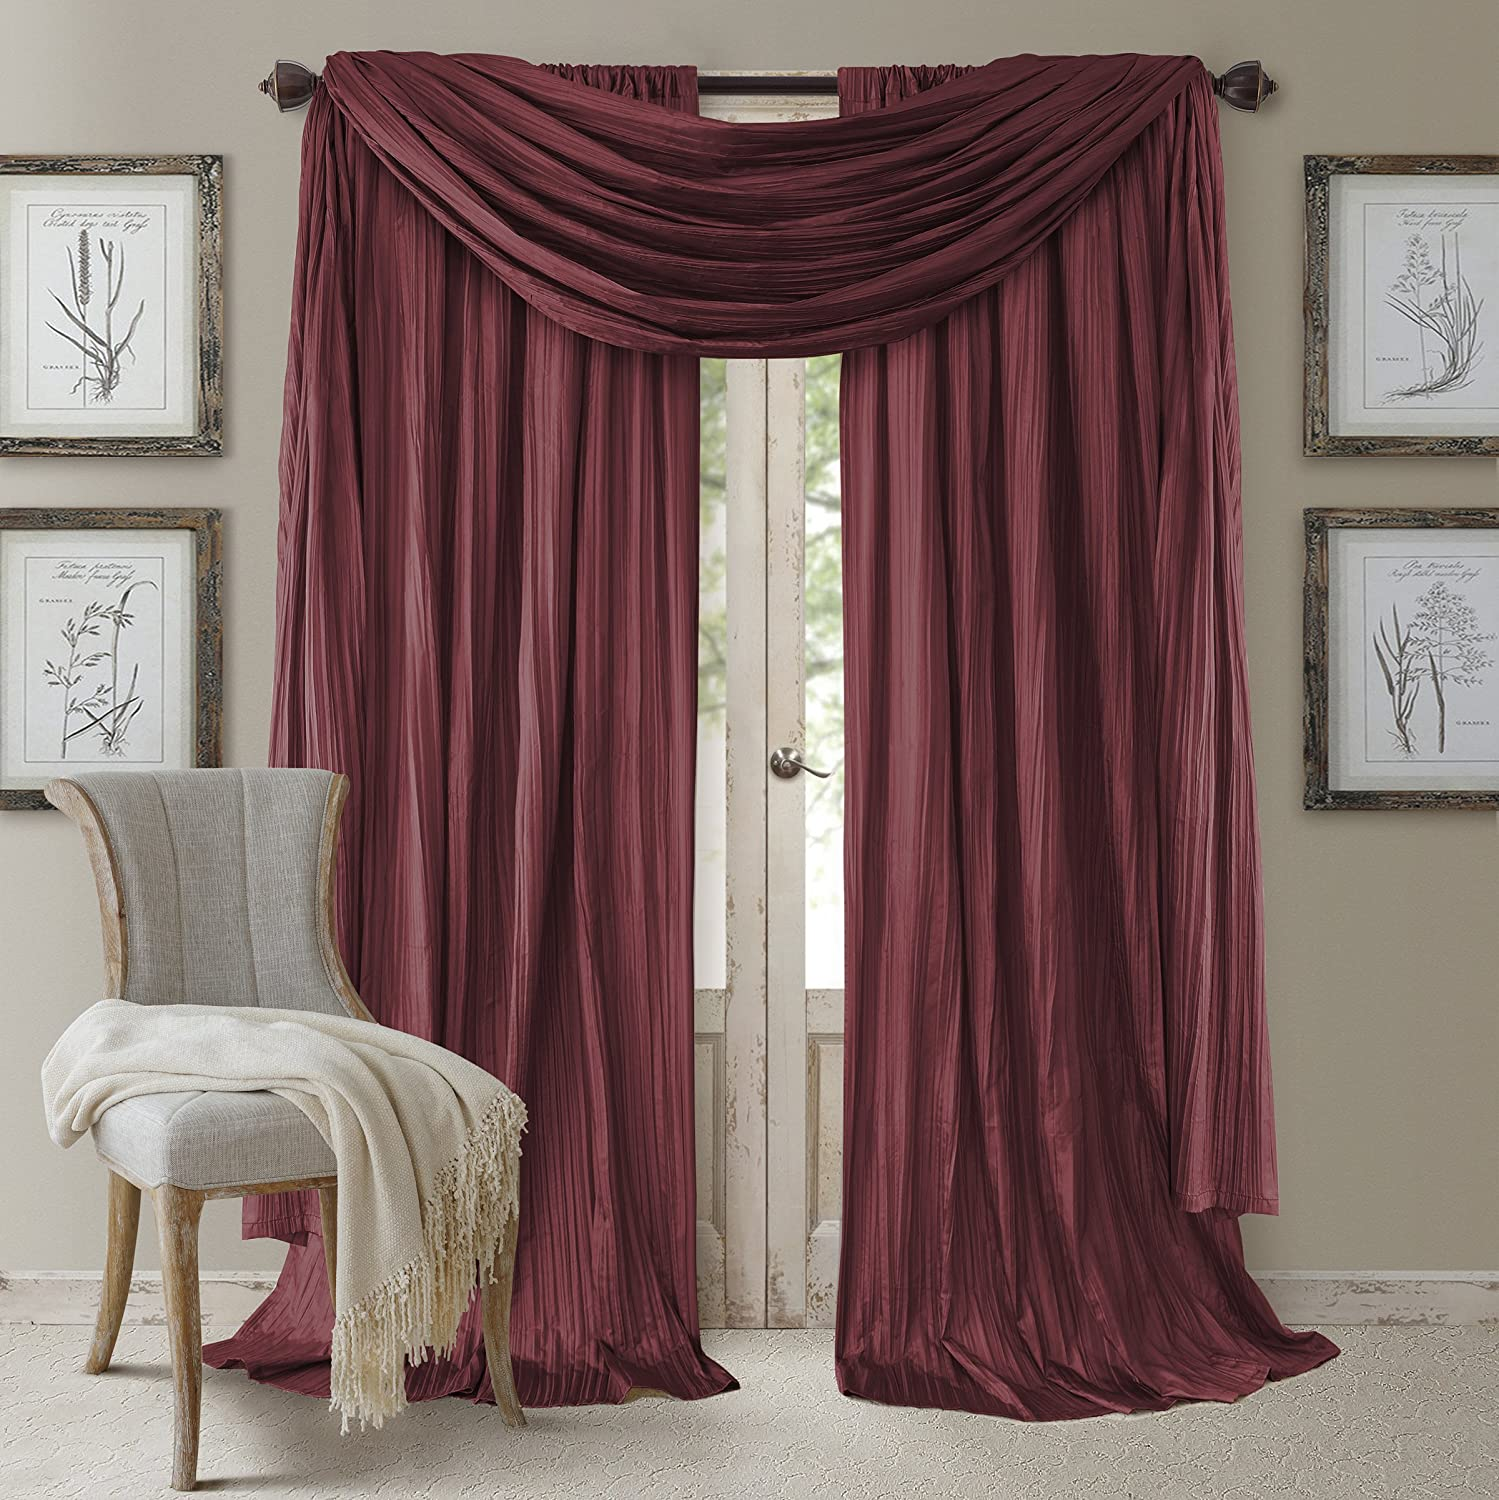 Elrene Home Fashions Venice Curtain Panels with Scarf Valance - Set of 3 - Panel 52